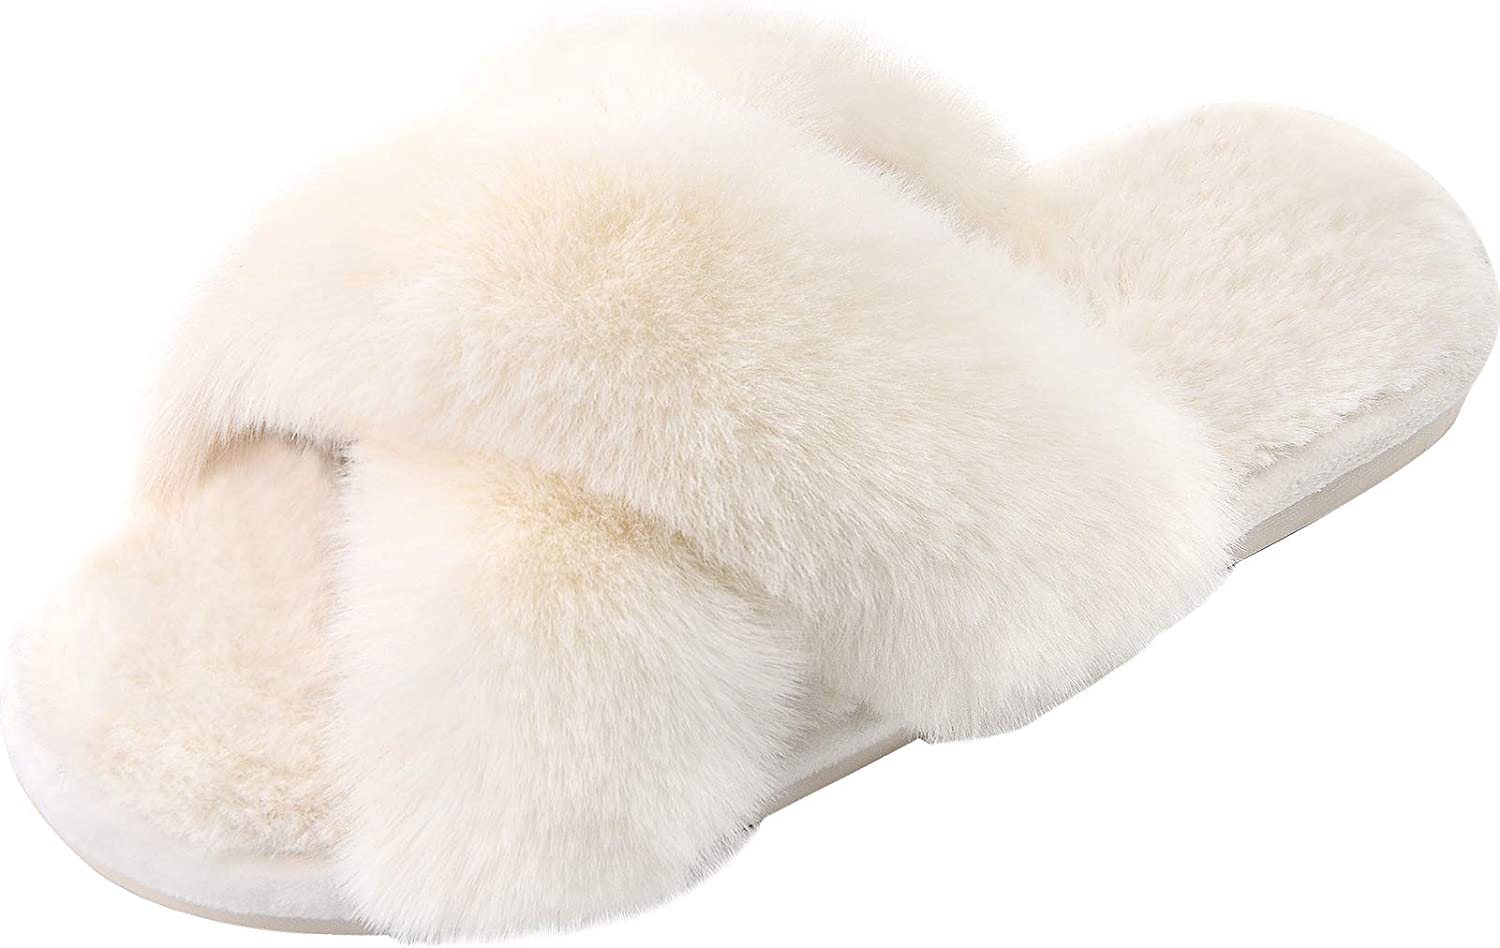 Women's Cross Band Slippers Soft Plush Furry Cozy Open Toe House Shoes Indoor Outdoor Faux Rabbit Fur Warm Comfy Slip On Breathable